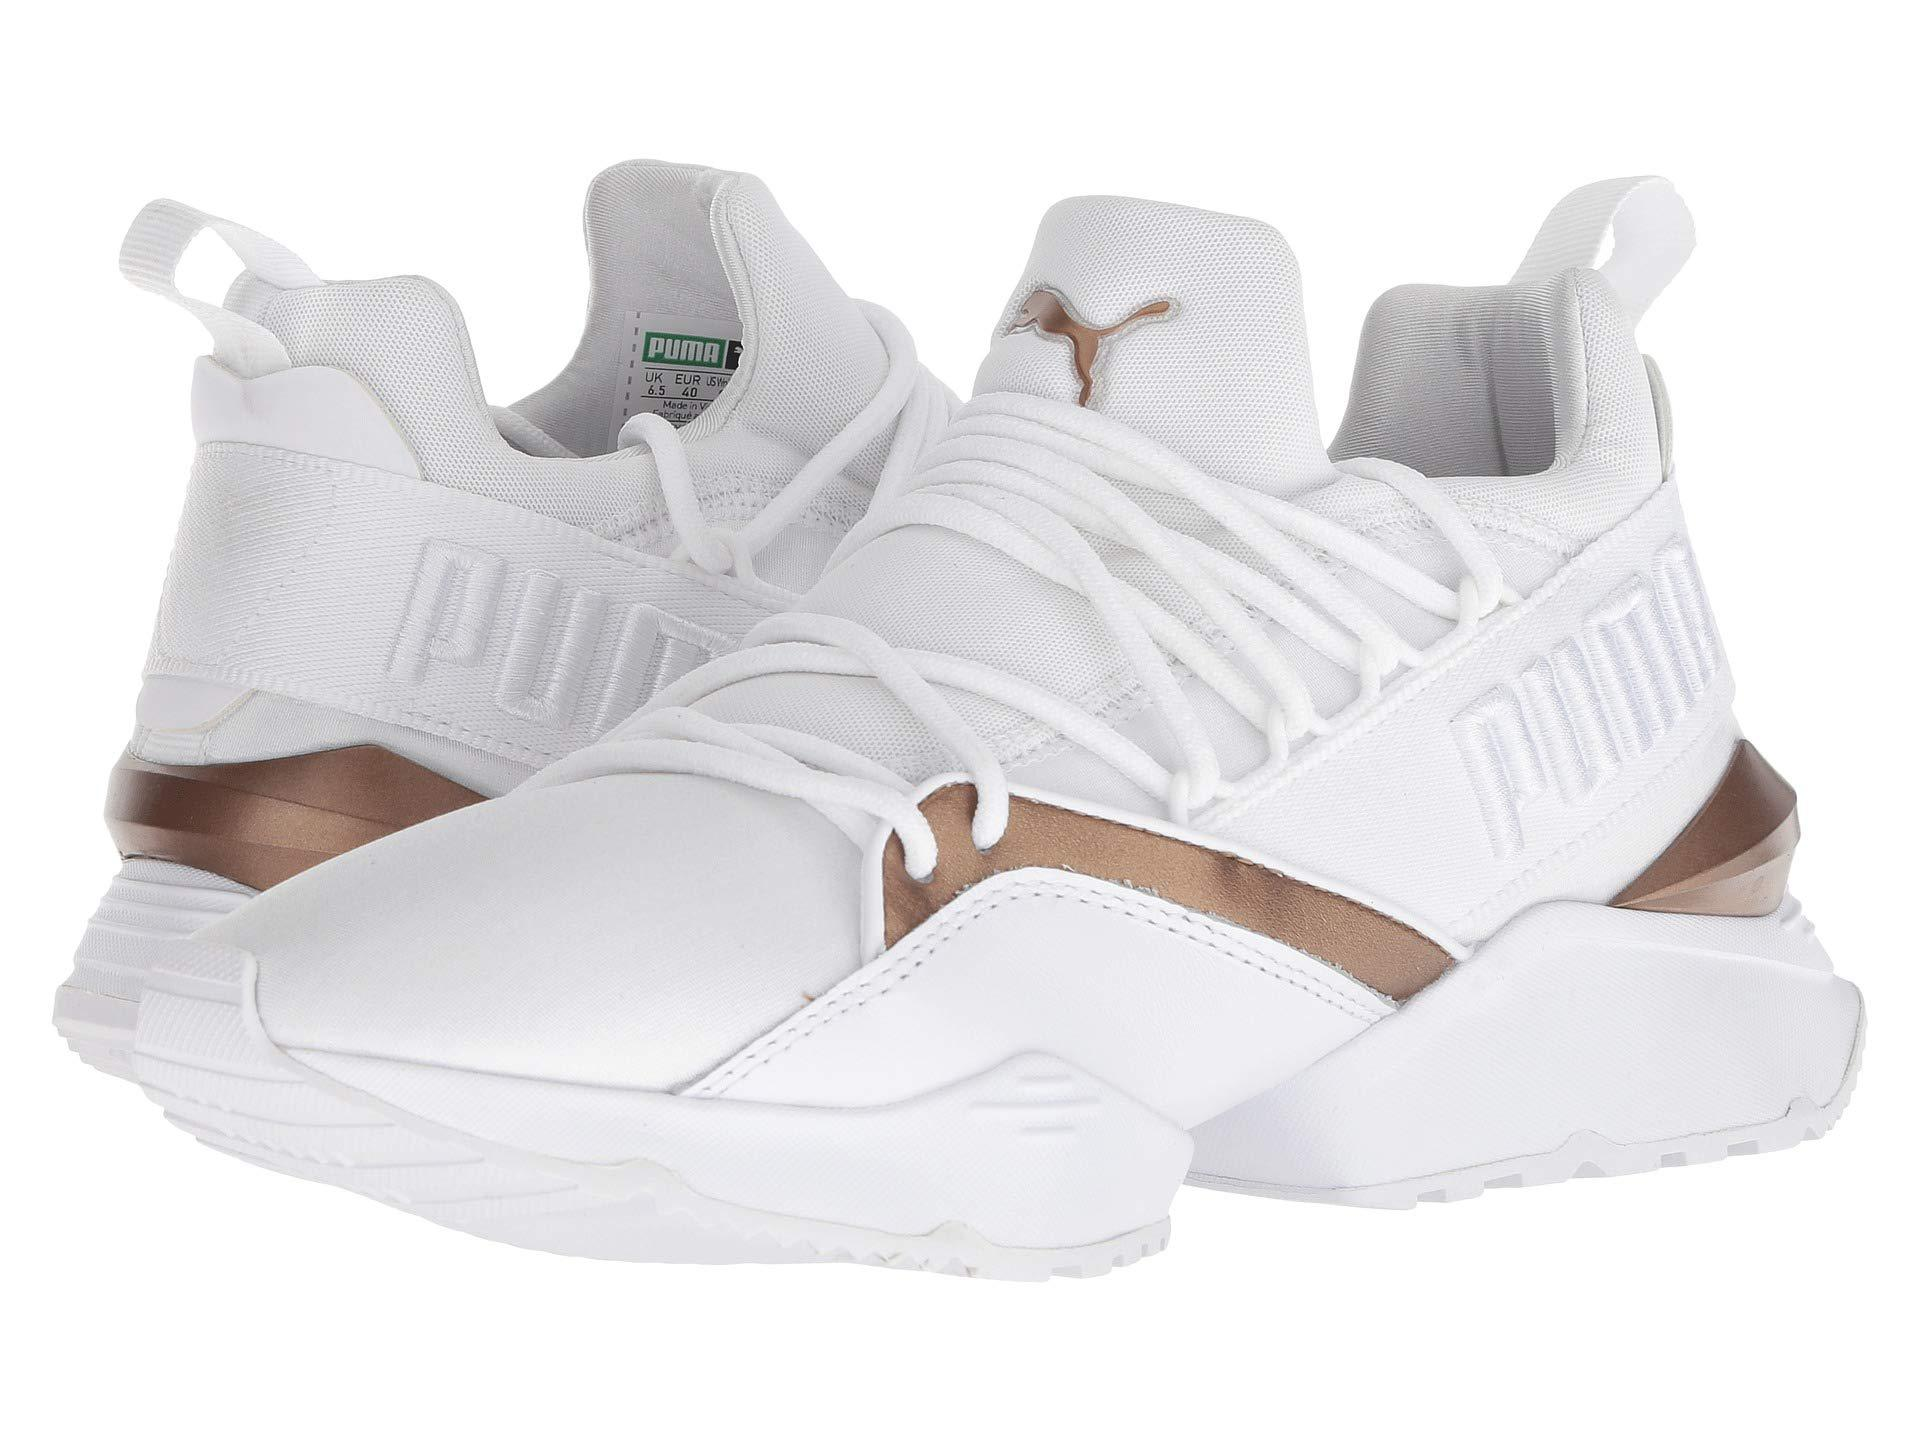 85e20d0d461b45 PUMA - Muse Maia Luxe ( White  White) Women s Lace Up Casual Shoes -. View  fullscreen